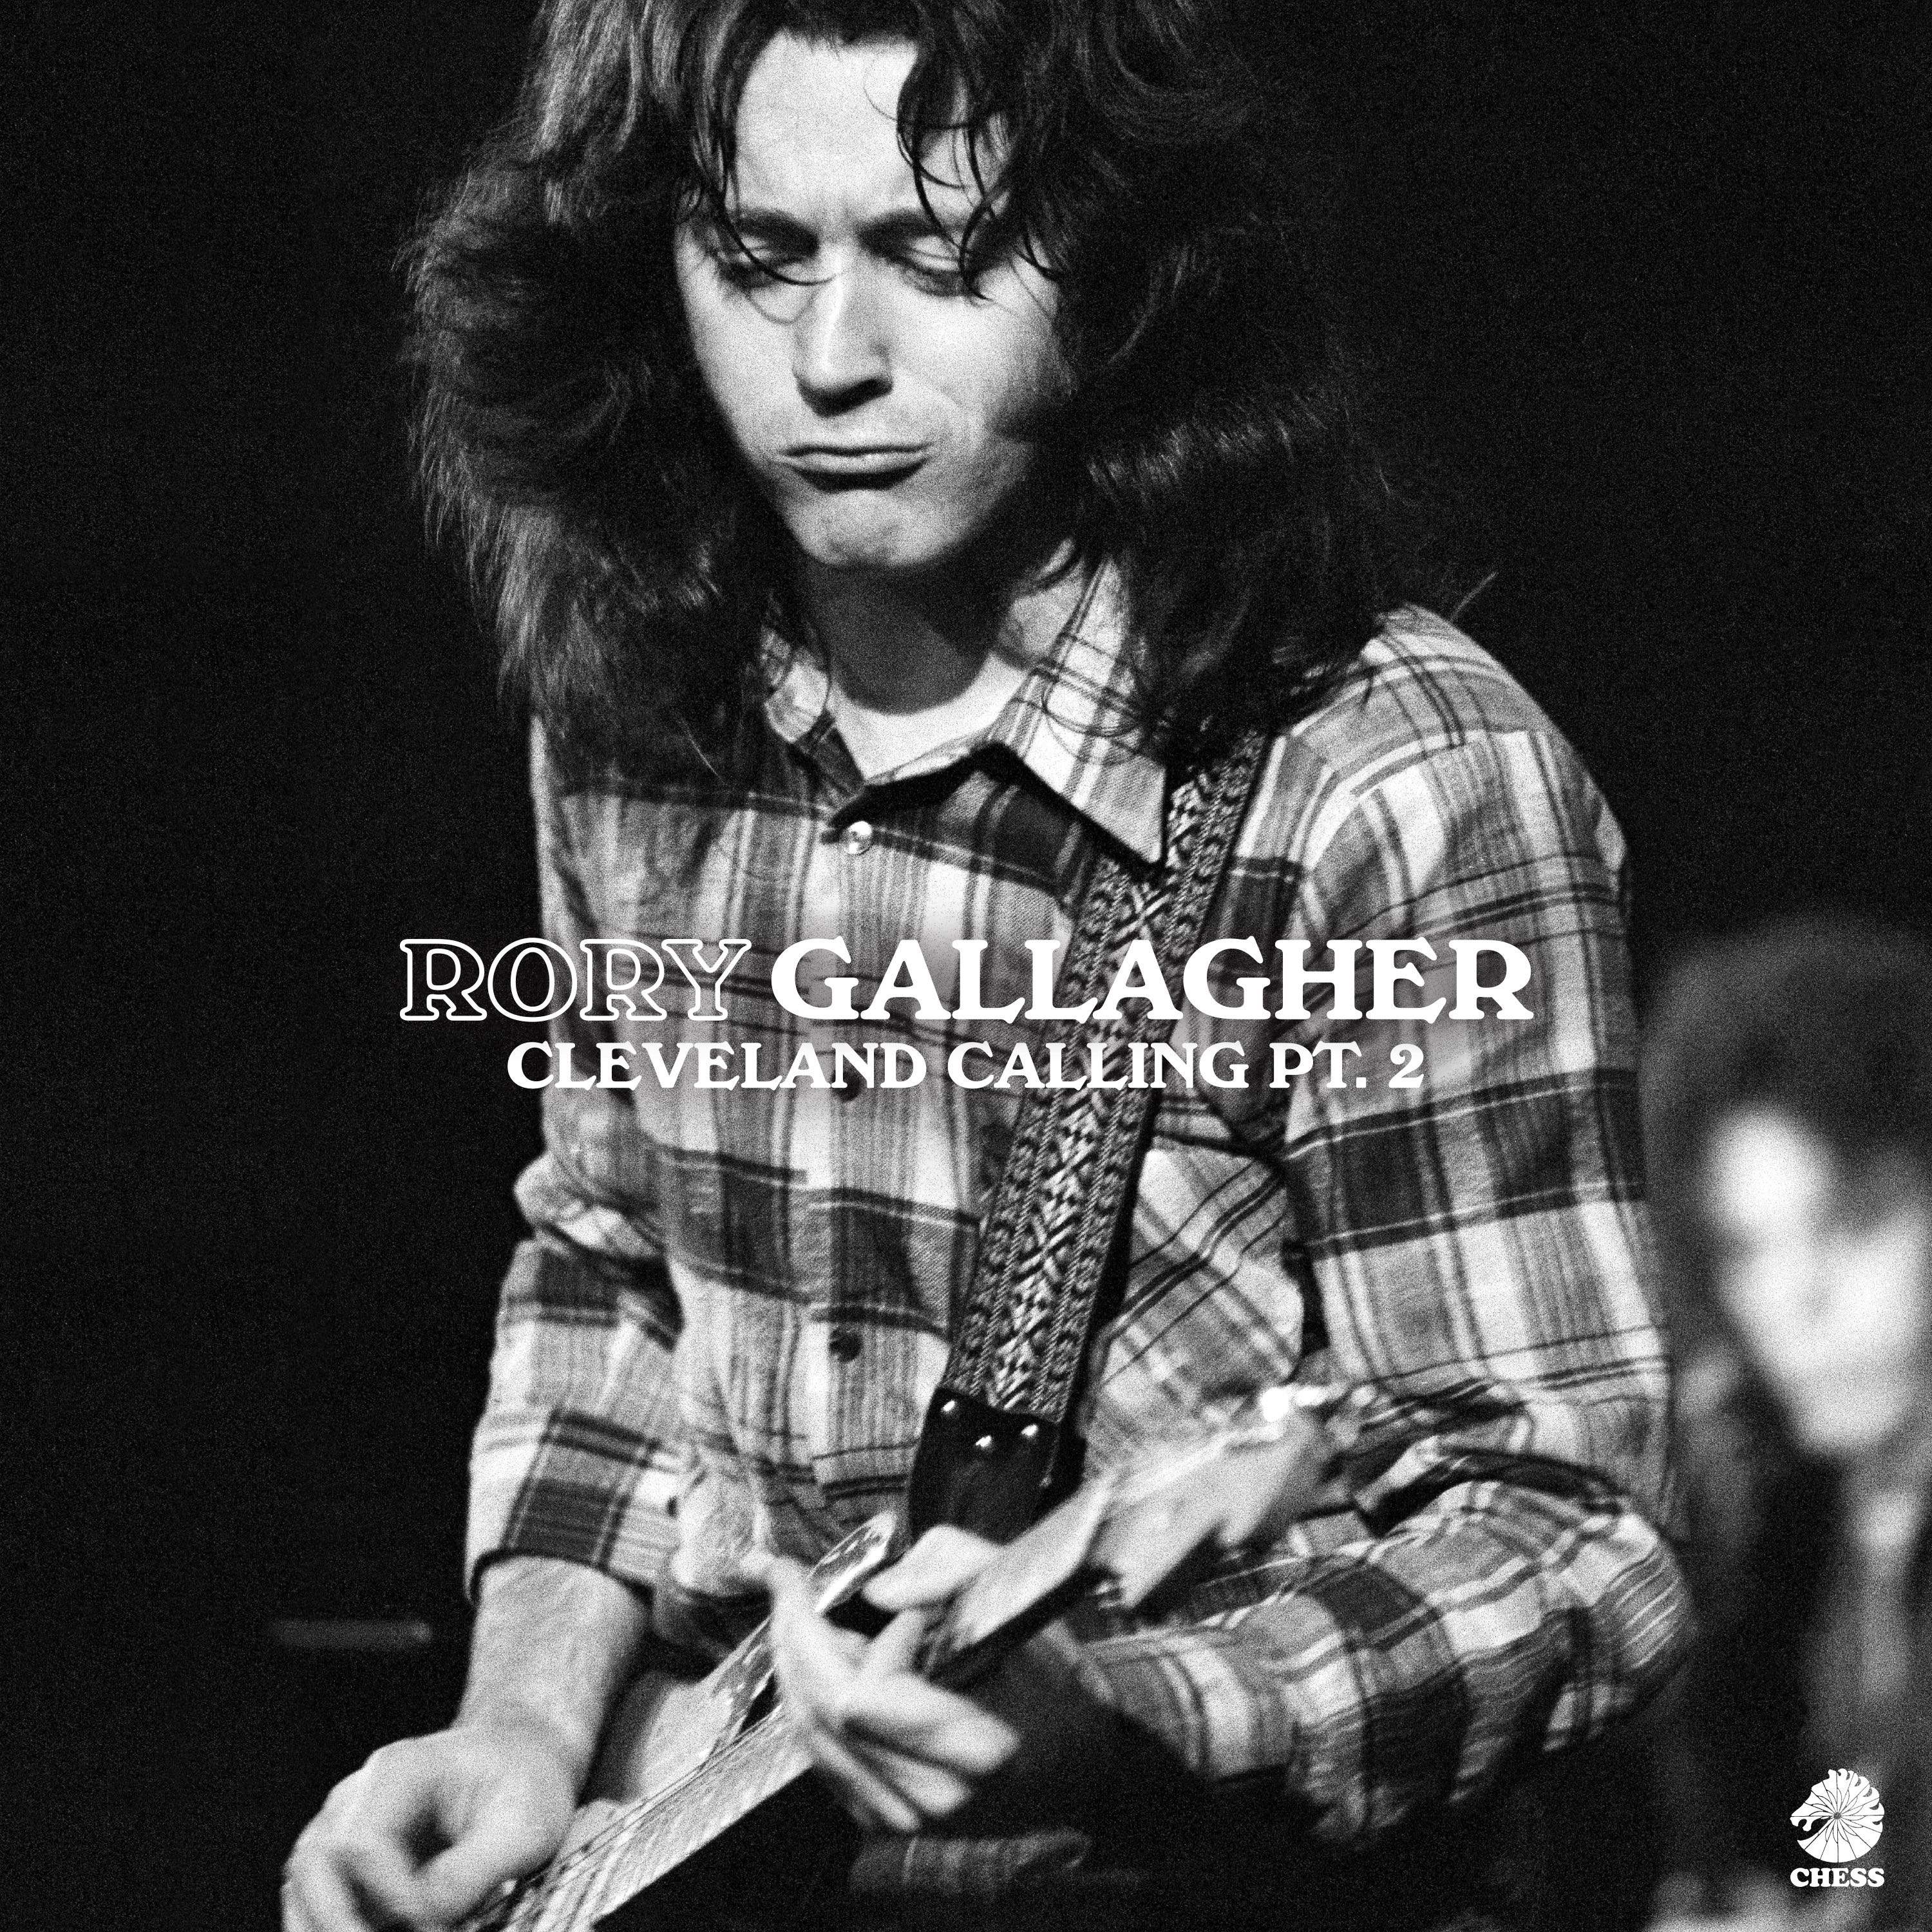 Rory Gallagher - Cleveland Calling Pt. 2 [RSD Drops 2021]